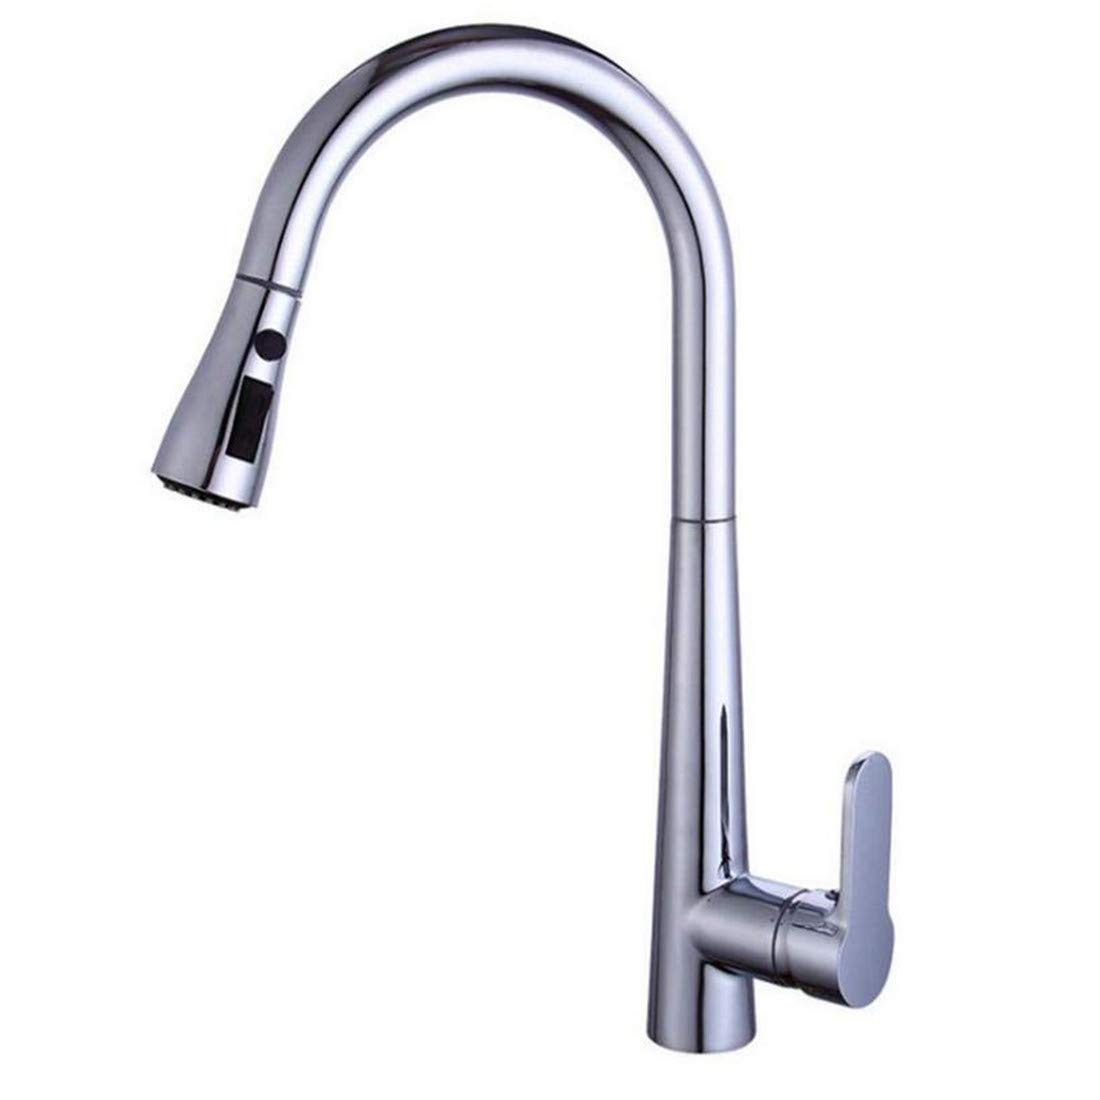 Kitchen Bath Basin Sink Bathroom Taps Kitchen Sink Taps Bathroom Taps Kitchen Faucet Ctzl7239